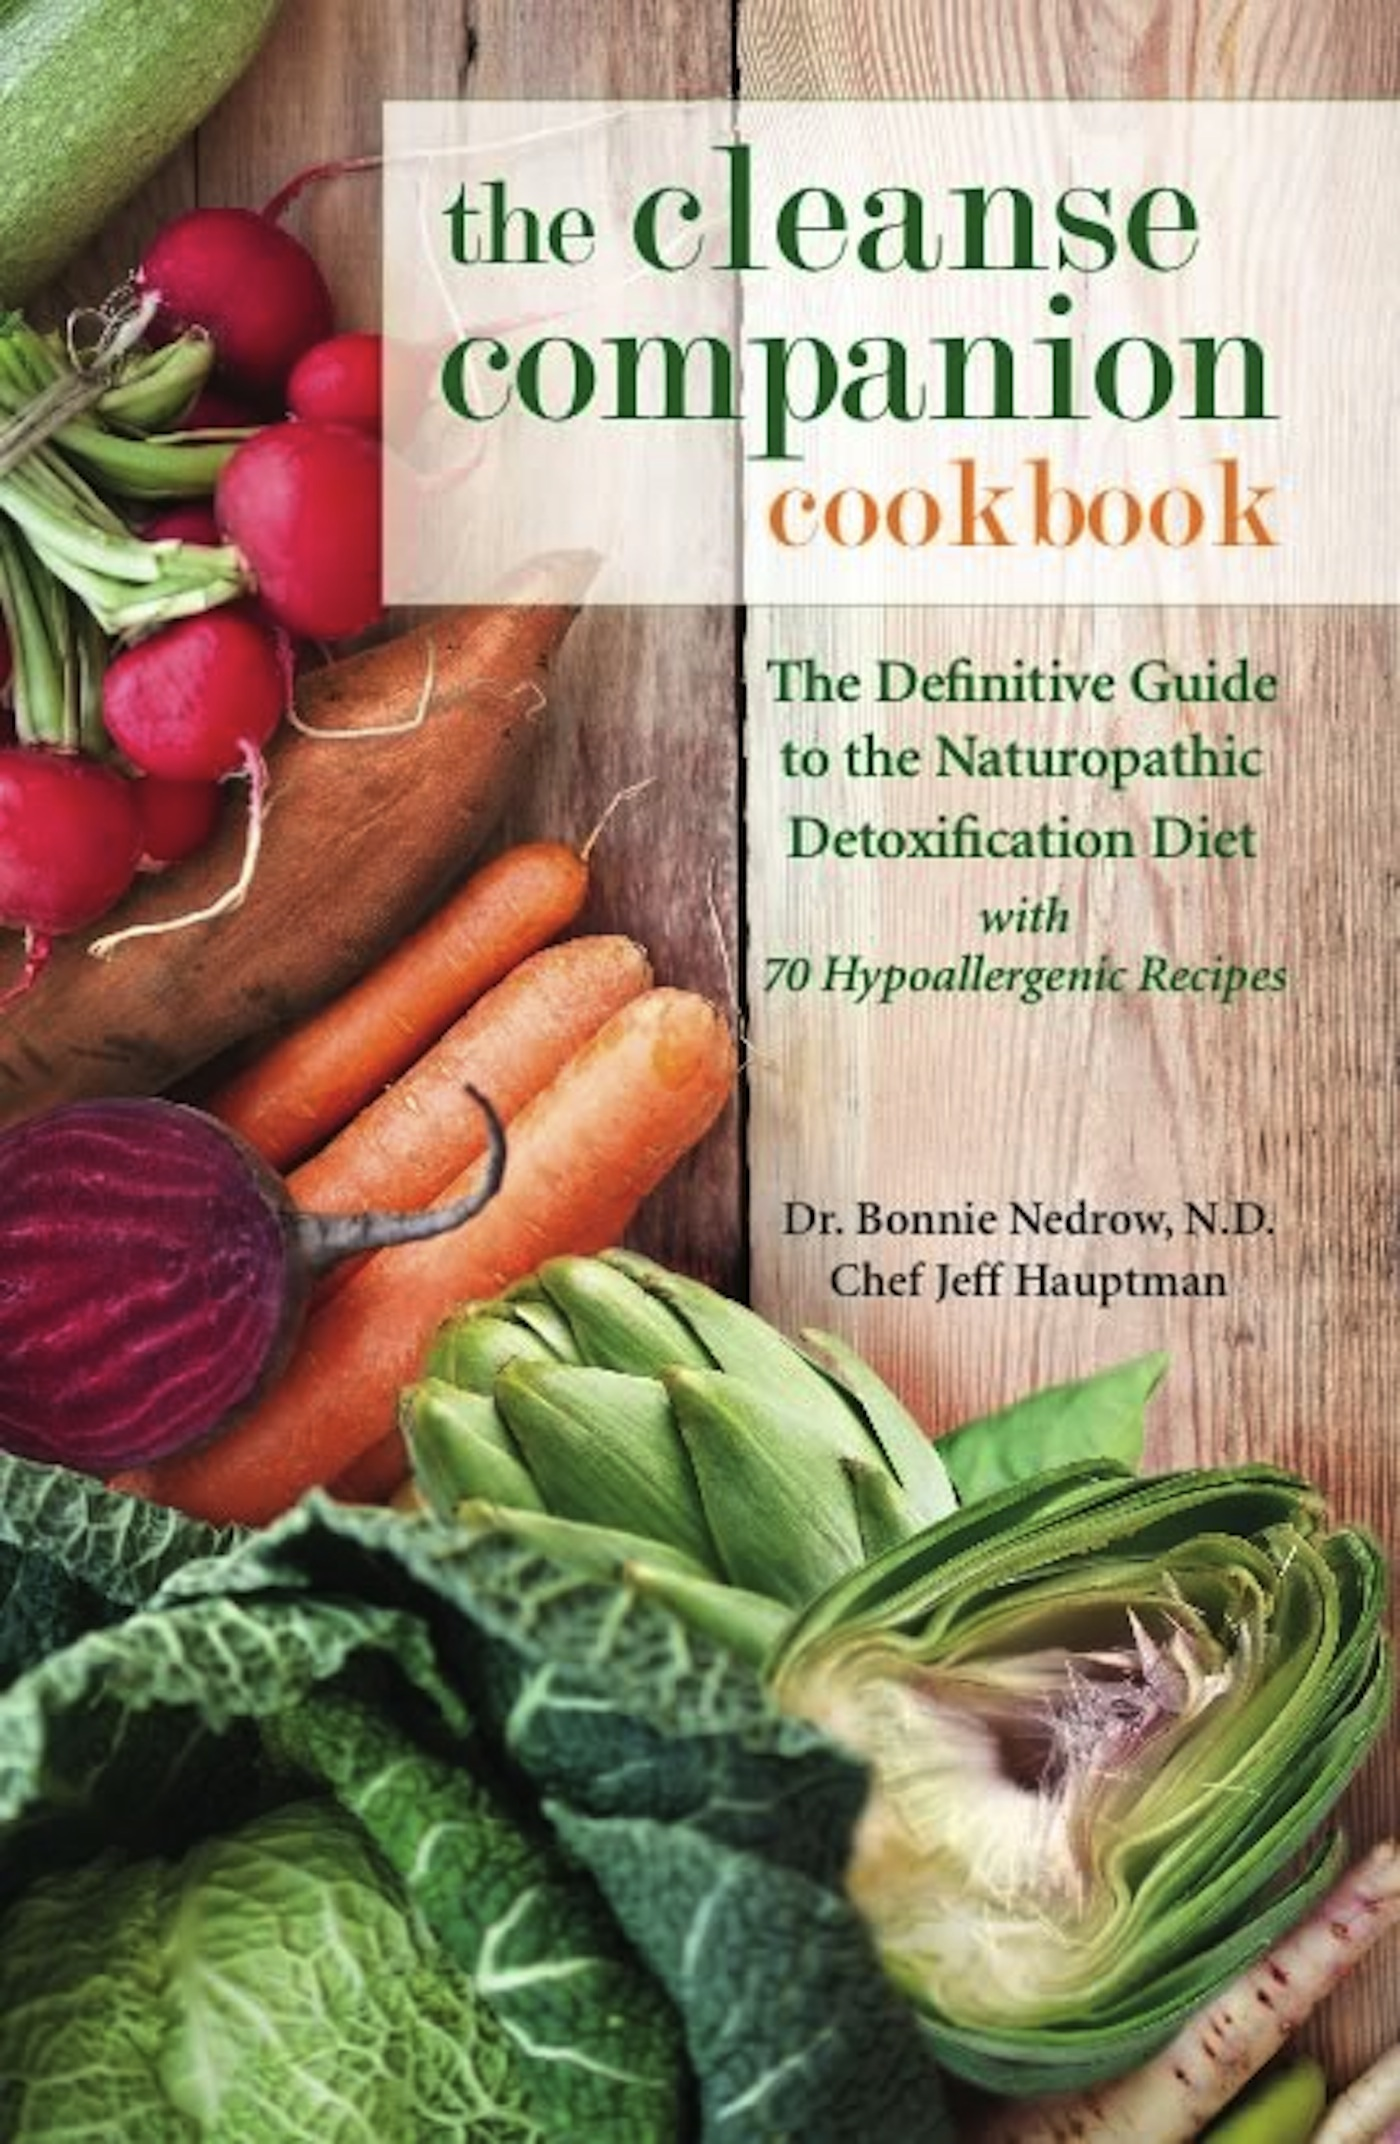 The Cleanse Companion Cookbook: The Definitive Guide to the Naturopathic Detoxification Diet with 69 Hypoallergenic Recipes By: Bonnie Nedrow,Jeff Hauptman